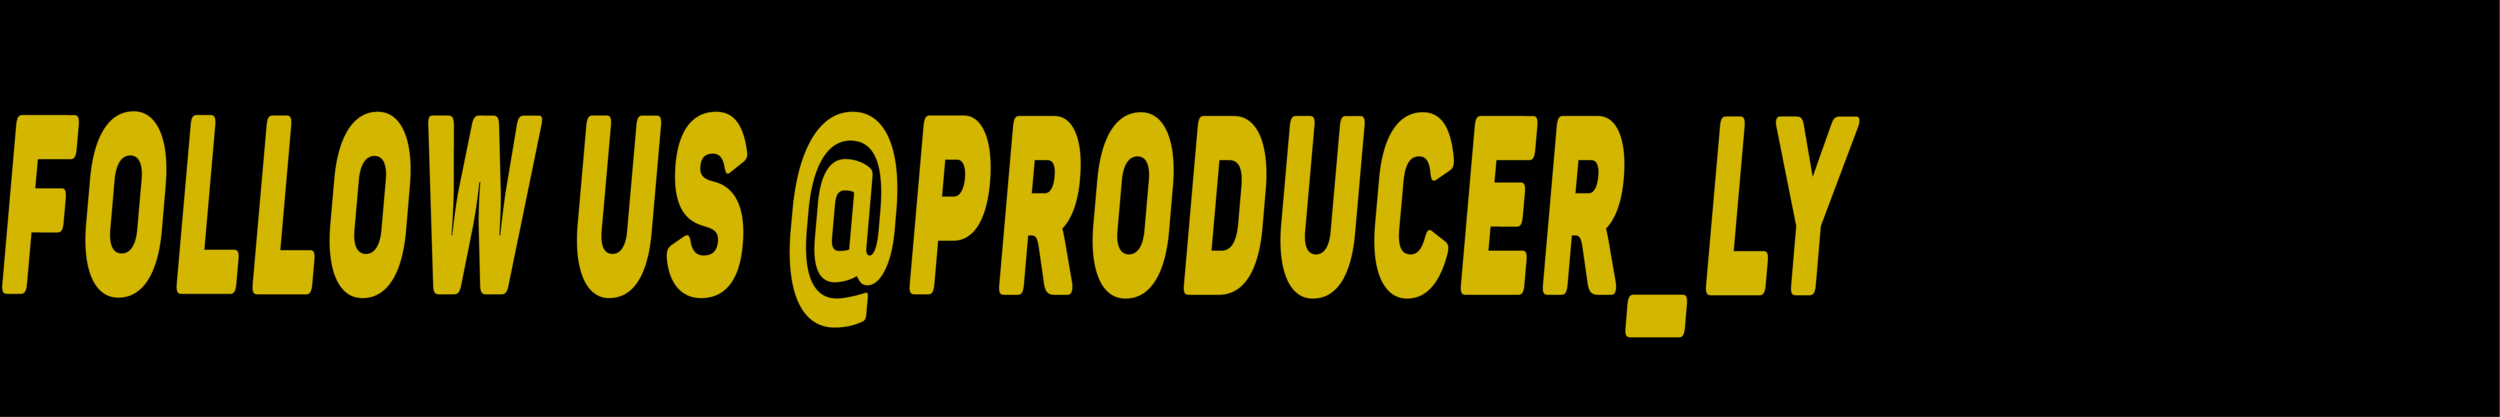 FollowUS_@Producer_ly.png